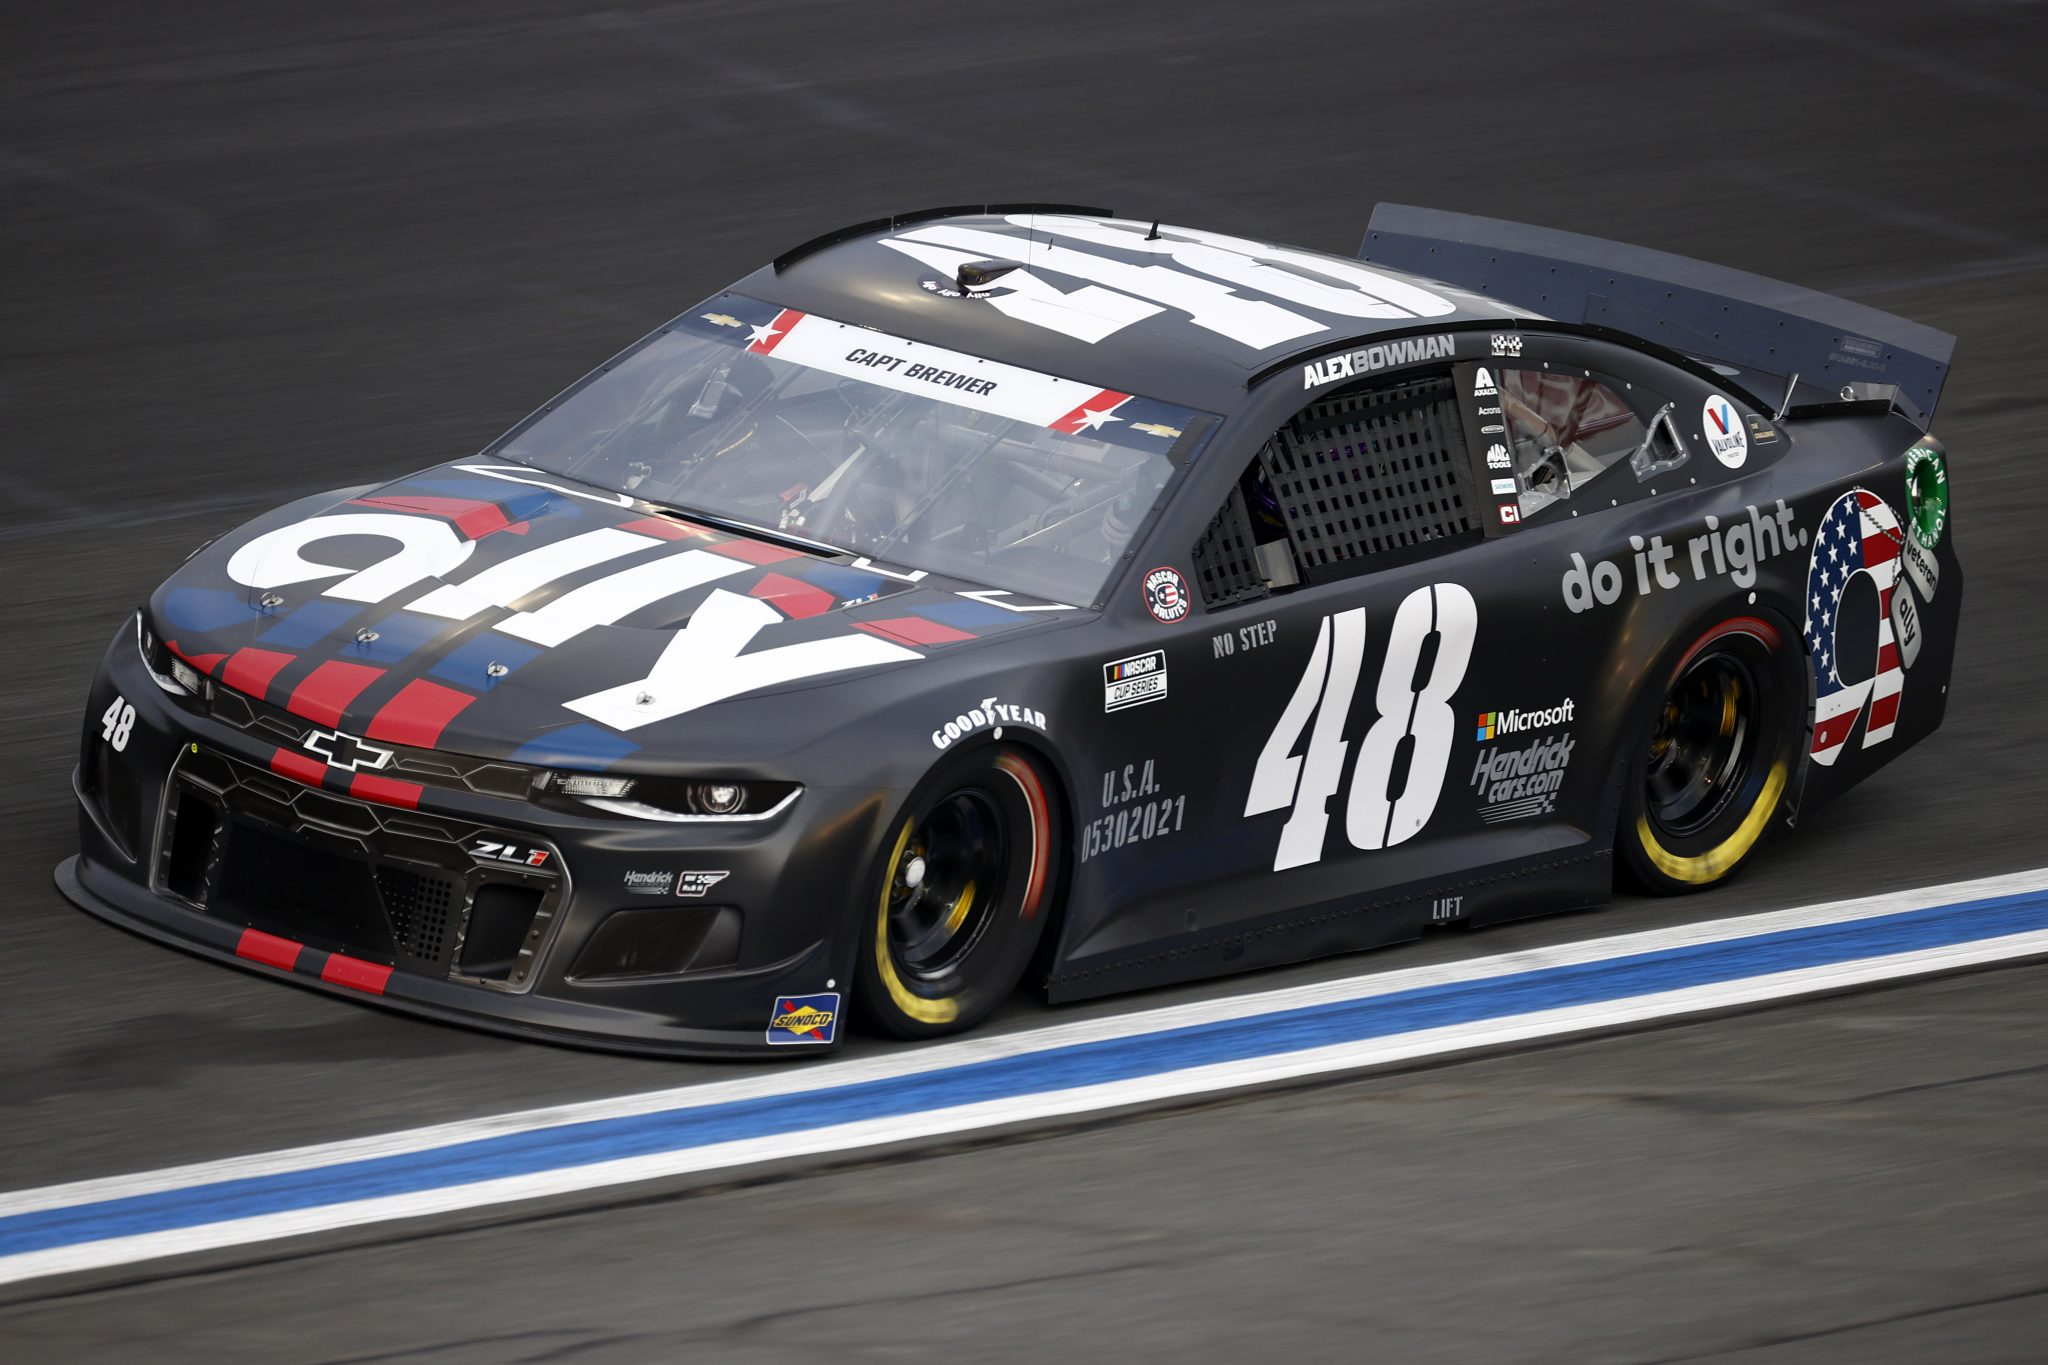 CONCORD, NORTH CAROLINA - MAY 28: Alex Bowman, driver of the #48 Ally Patriotic Chevrolet, drives during practice for the NASCAR Cup Series Coca-Cola 600 at Charlotte Motor Speedway on May 28, 2021 in Concord, North Carolina. (Photo by Jared C. Tilton/Getty Images) | Getty Images